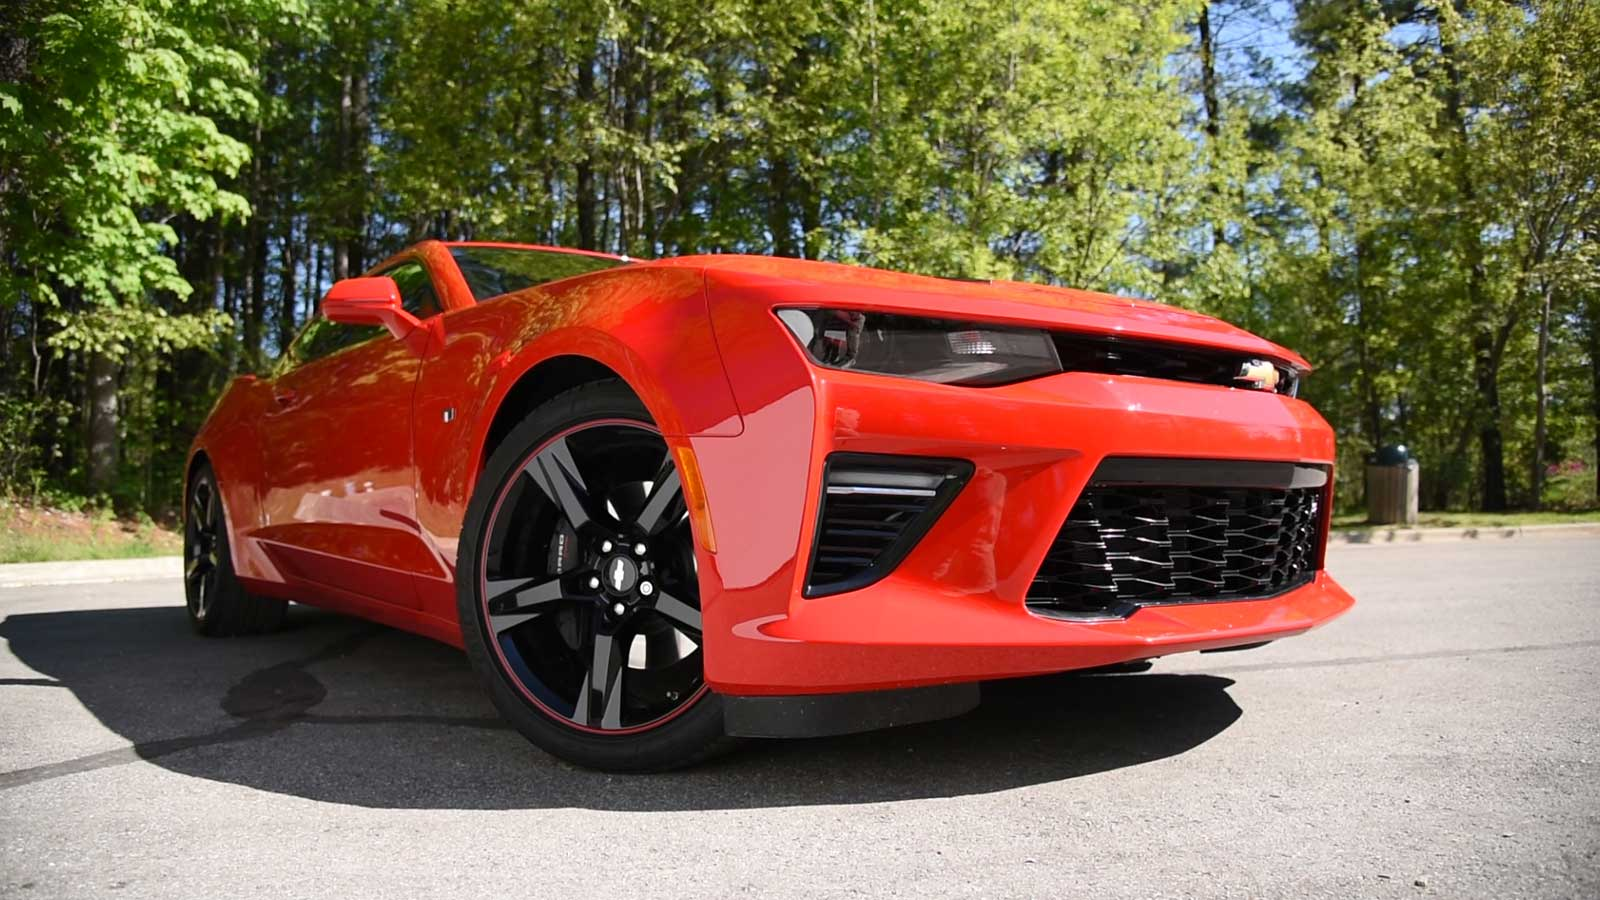 6th Gen Chevy Camaro Faces Ugly Inventory Problem - GM Inside News